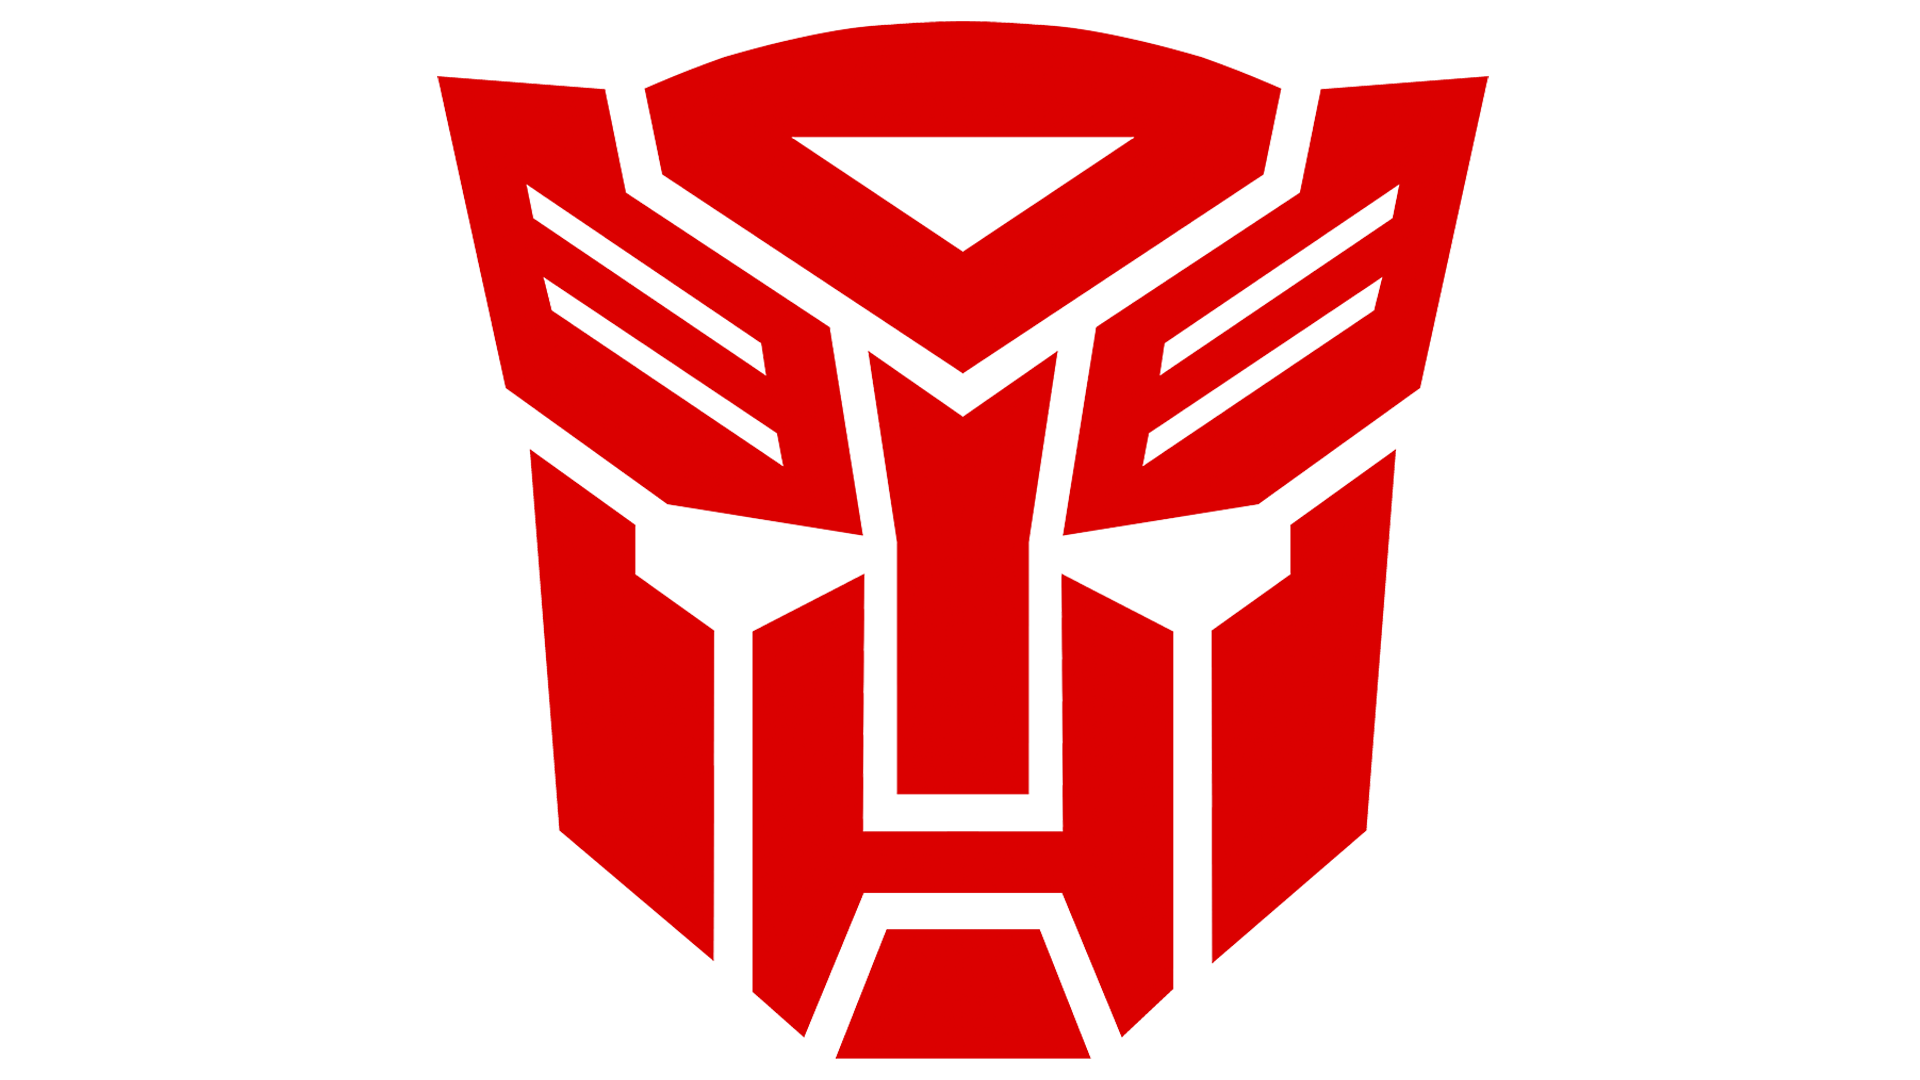 Autobots Logo Symbol Meaning History And Evolution